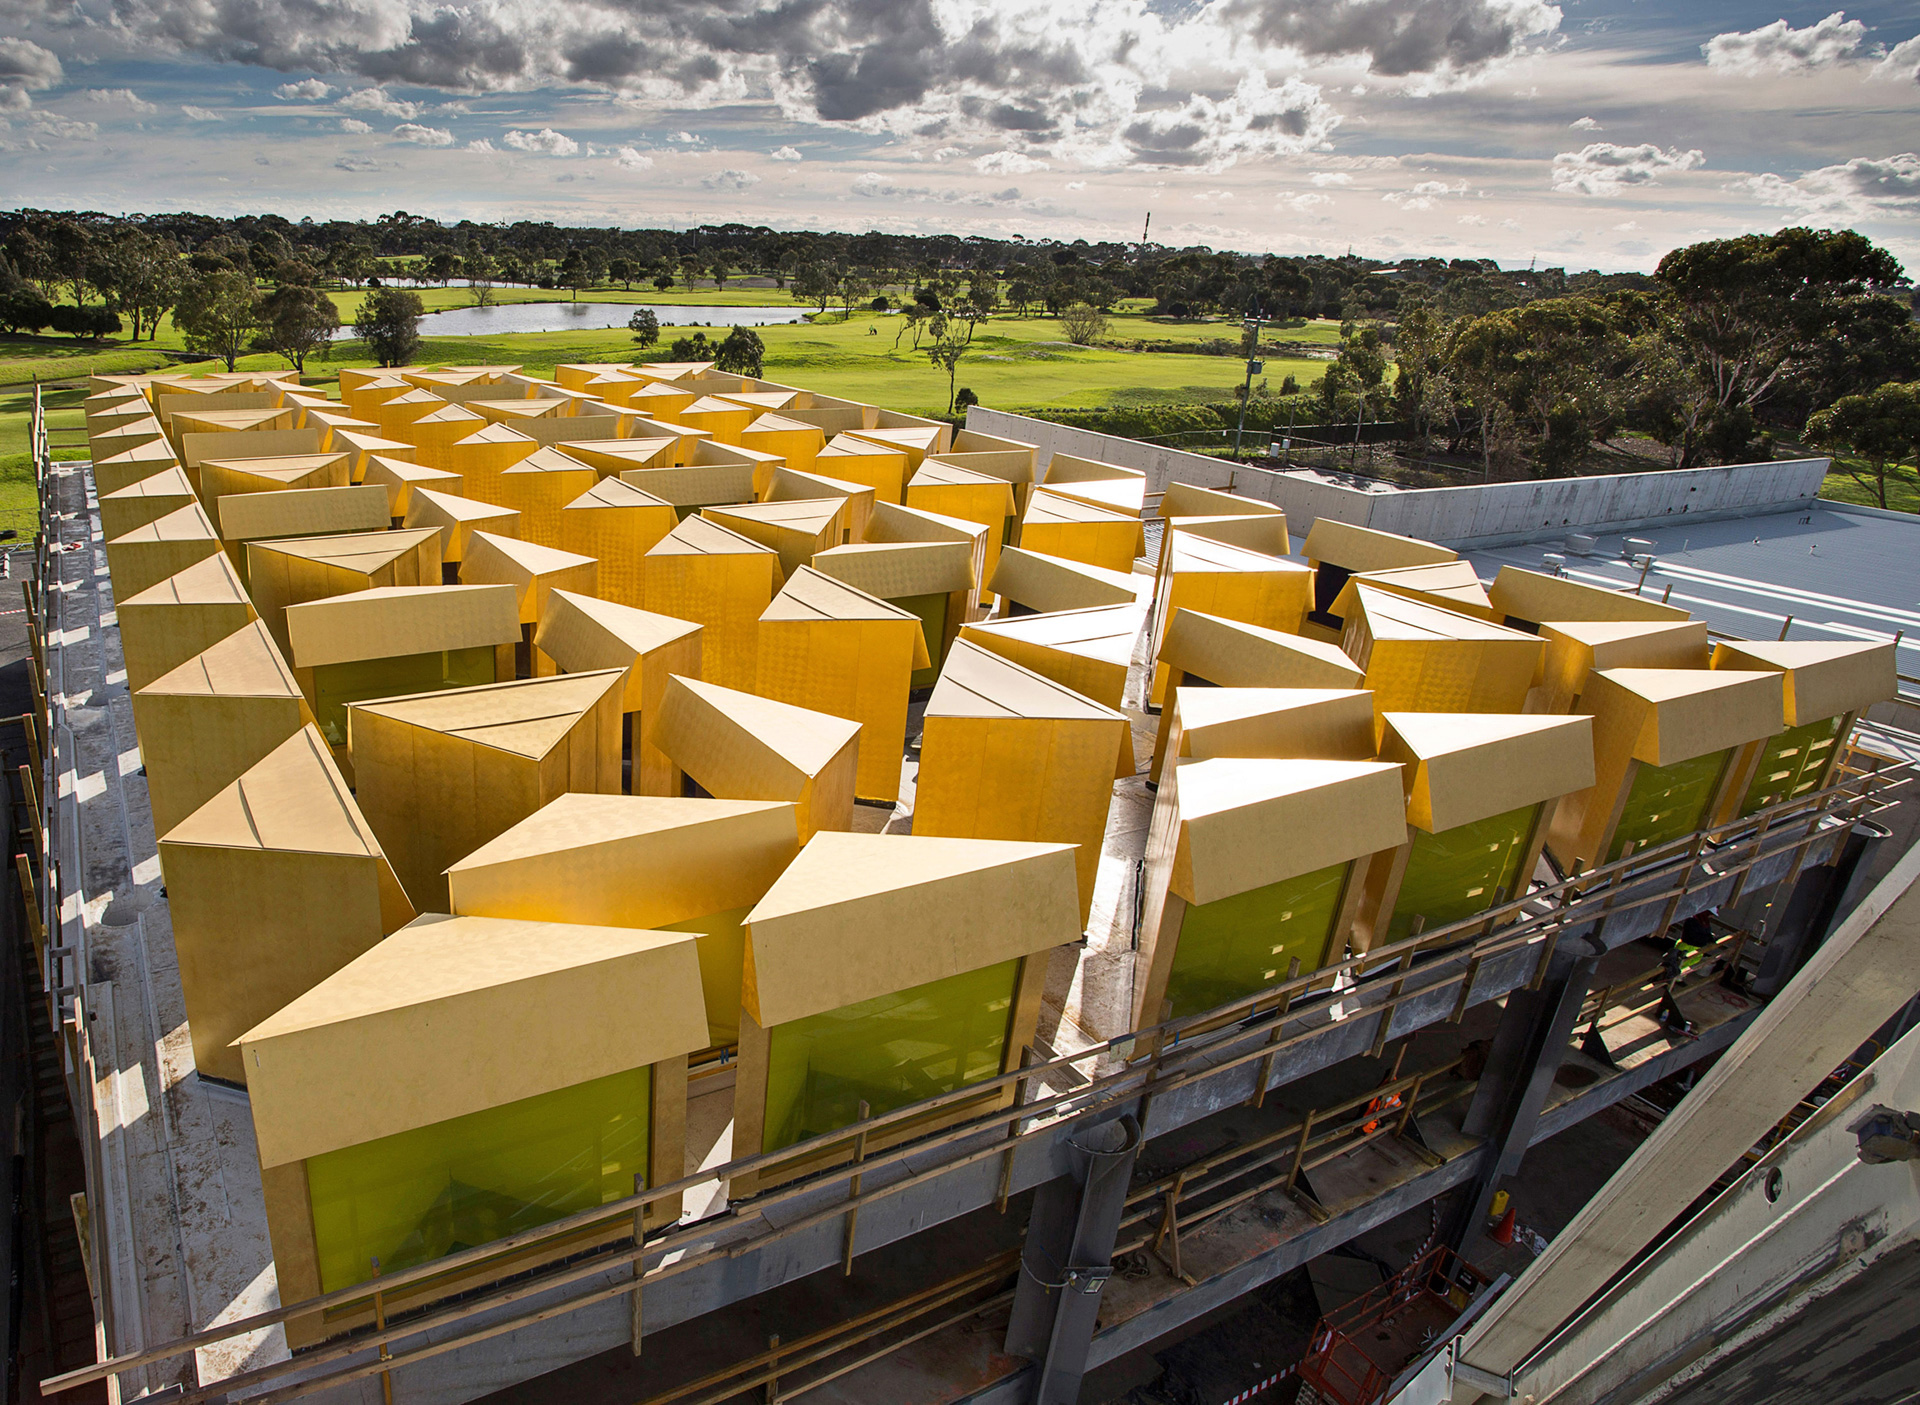 The Australian Islamic Centre designed by Glenn Murcutt| MPavilion 2019| Glenn Murcutt| STIR